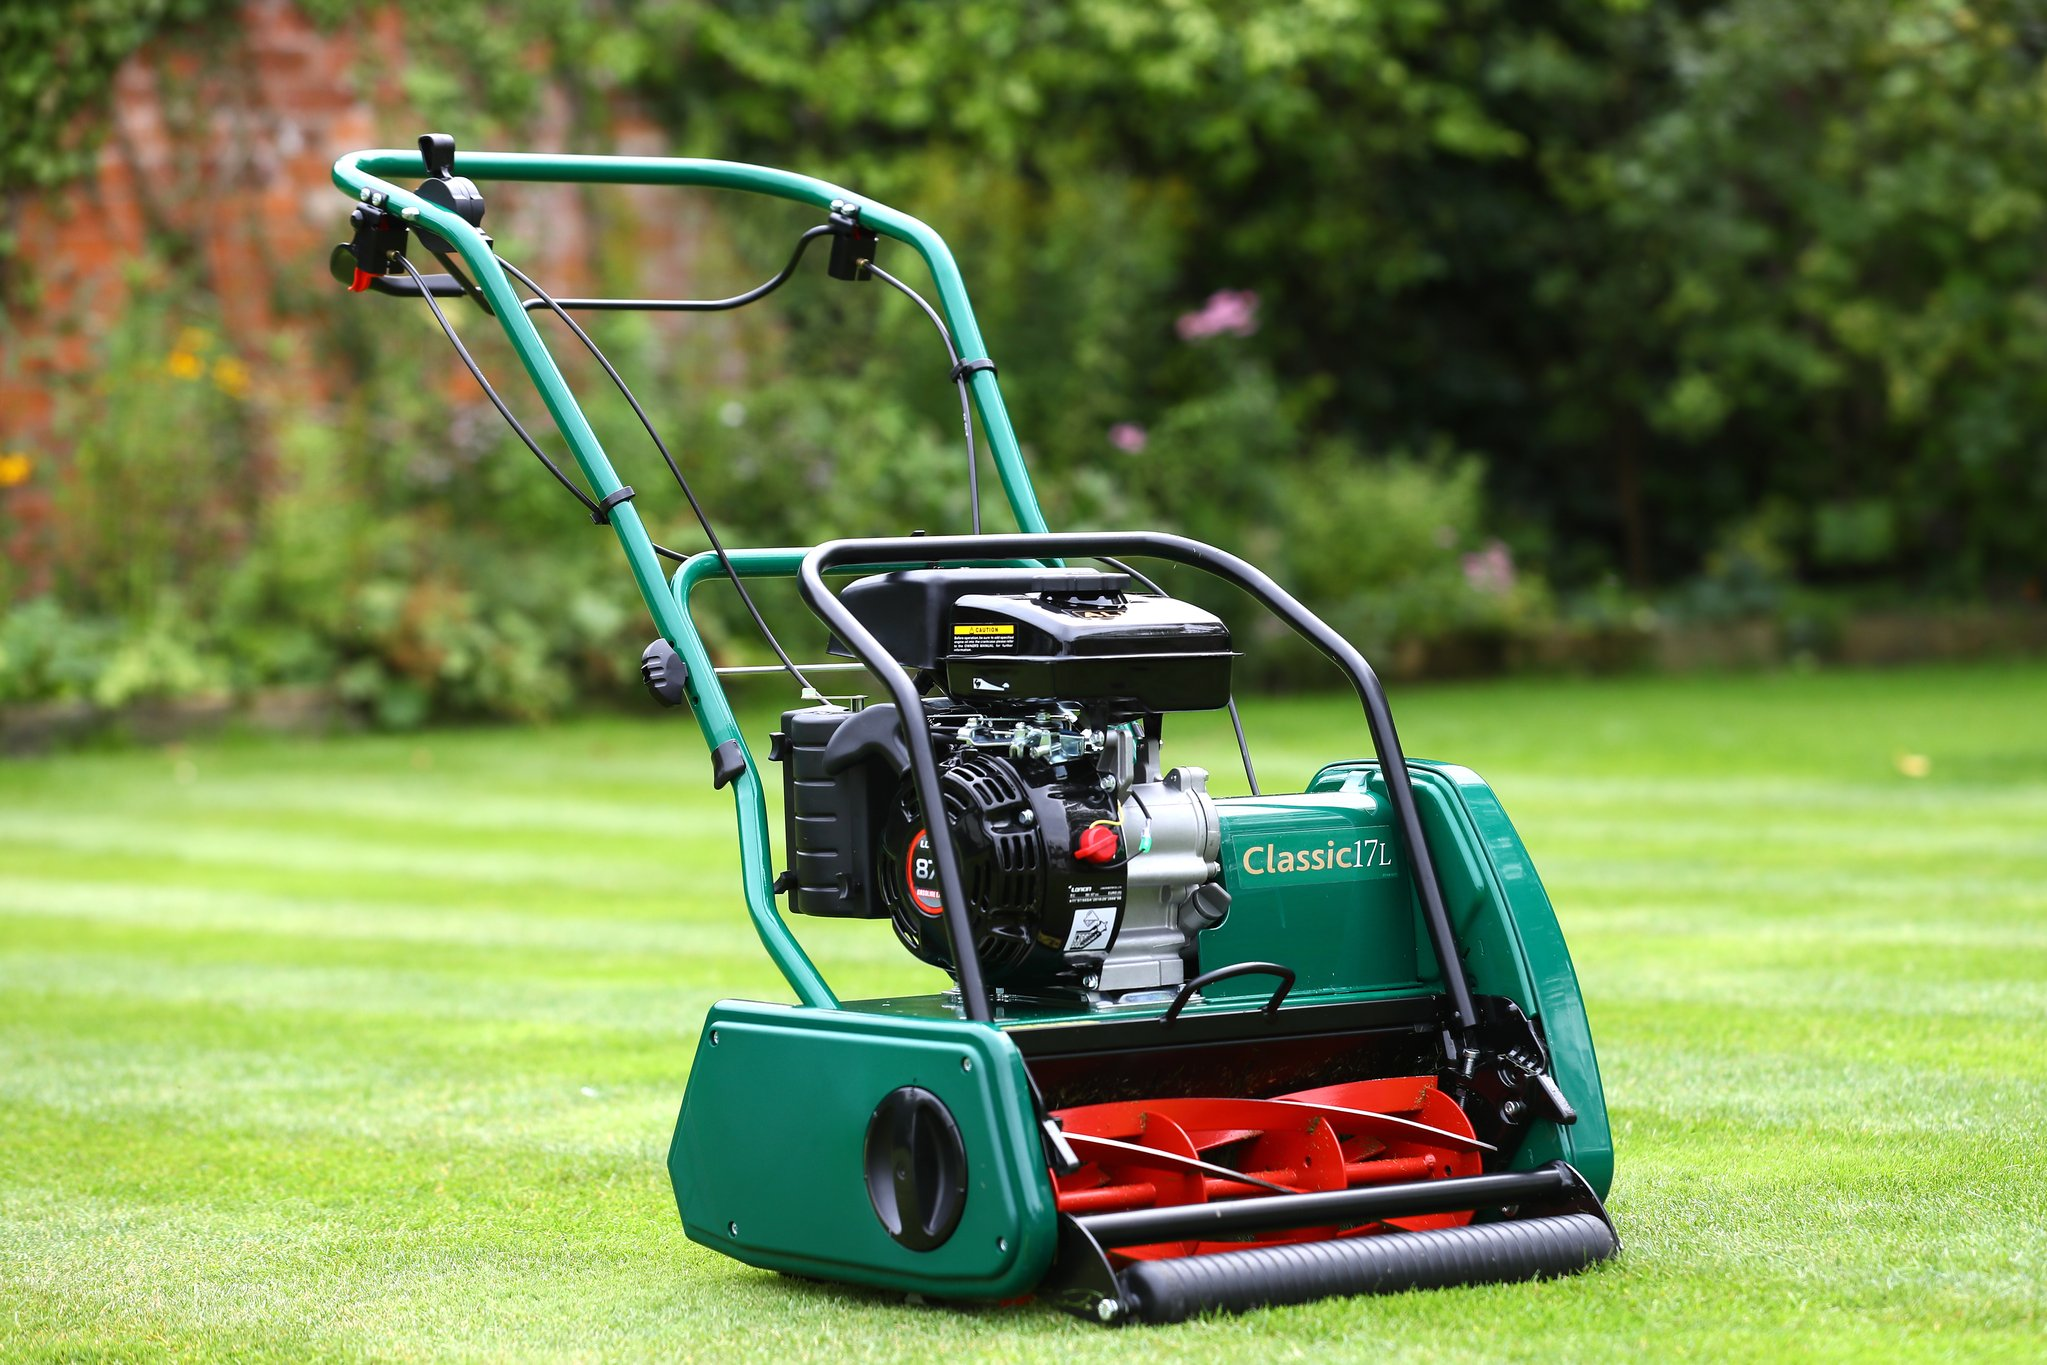 Allett Classic 17L Petrol Cylinder Mower | Plymouth Garden Machinery